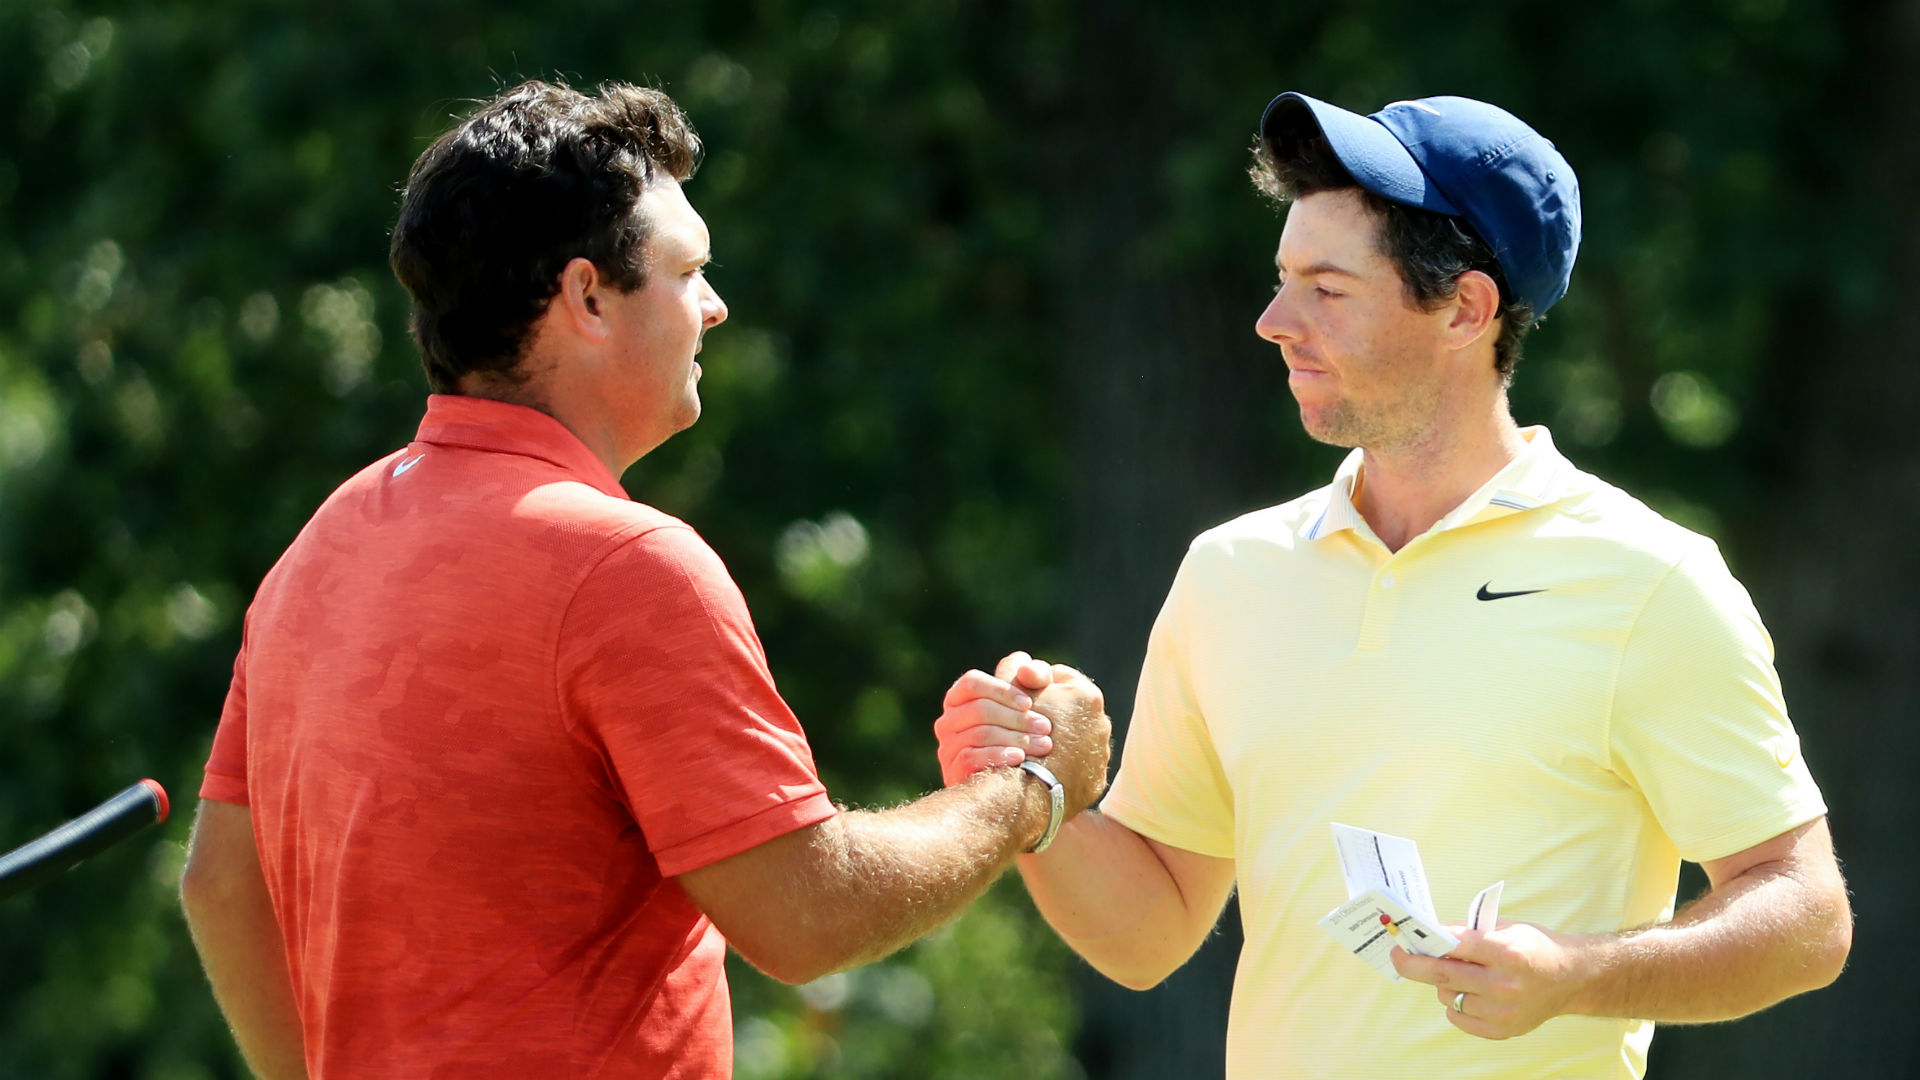 Patrick Reed has been on the defensive after becoming embroiled in controversy at the Hero World Challenge, with Rory McIlroy on his side.